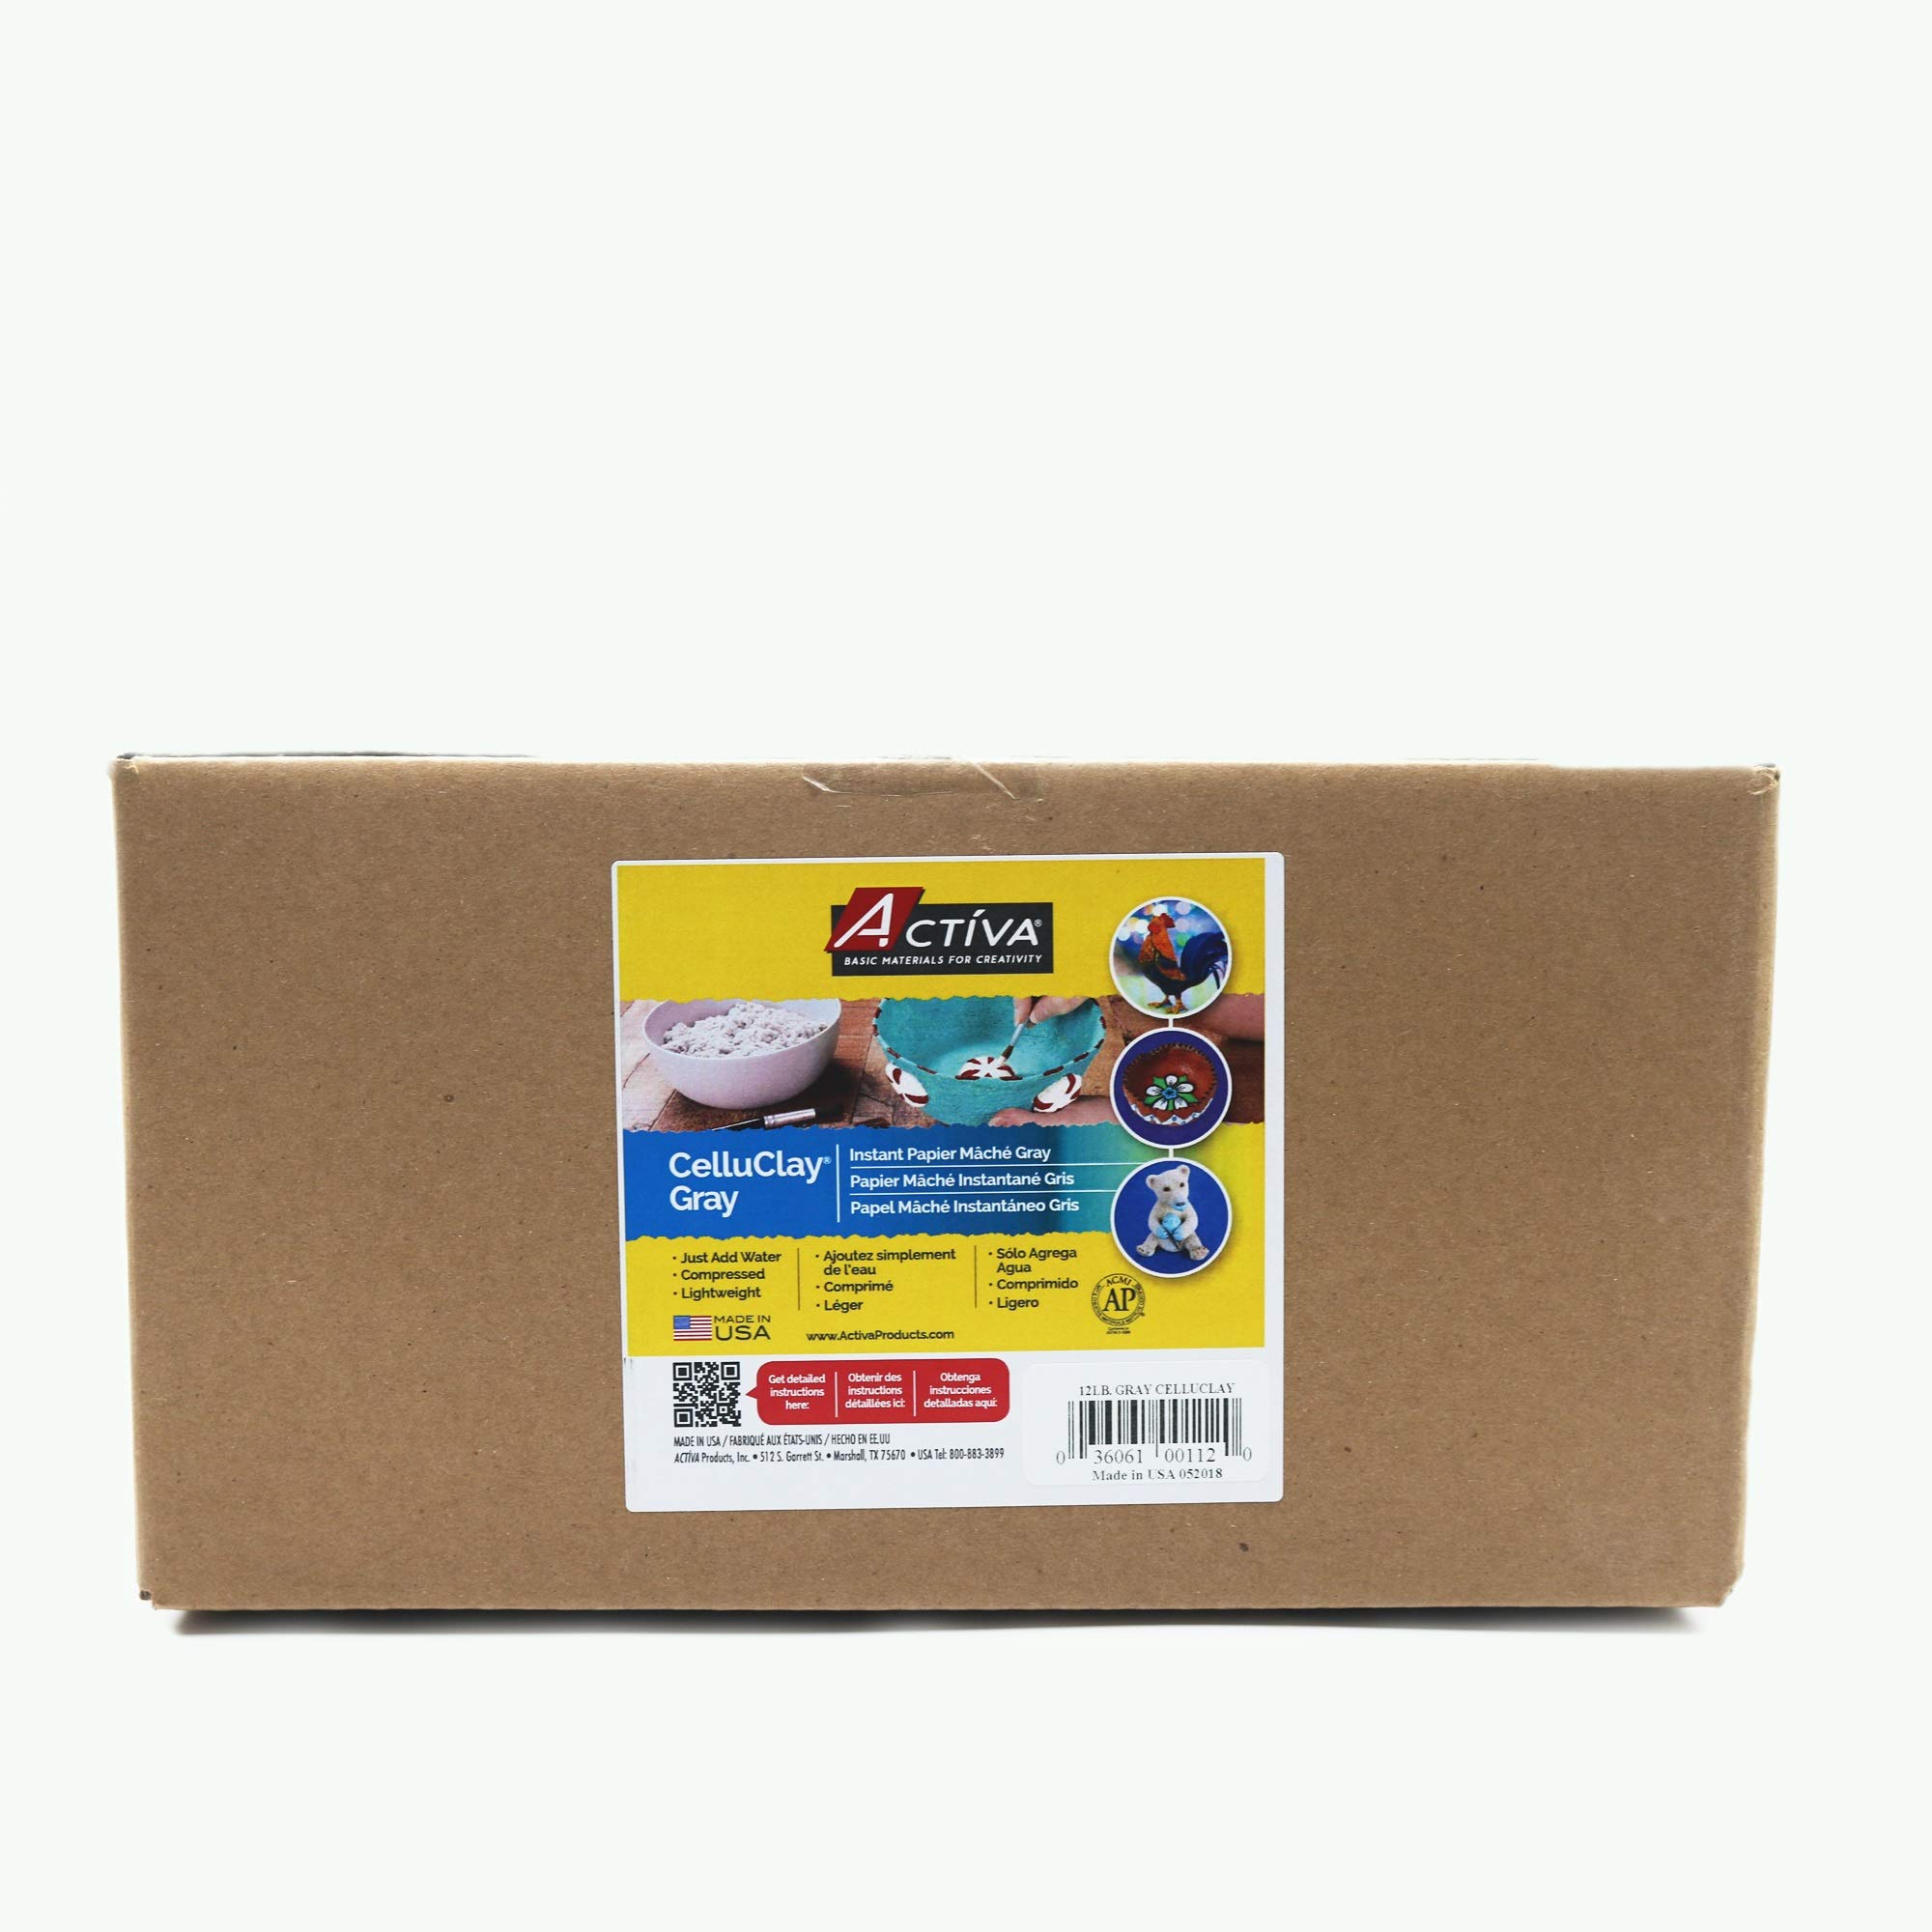 Activa 112 Celluclay Instant Mix, 12 pounds, Gray Paper Mache, by Activa